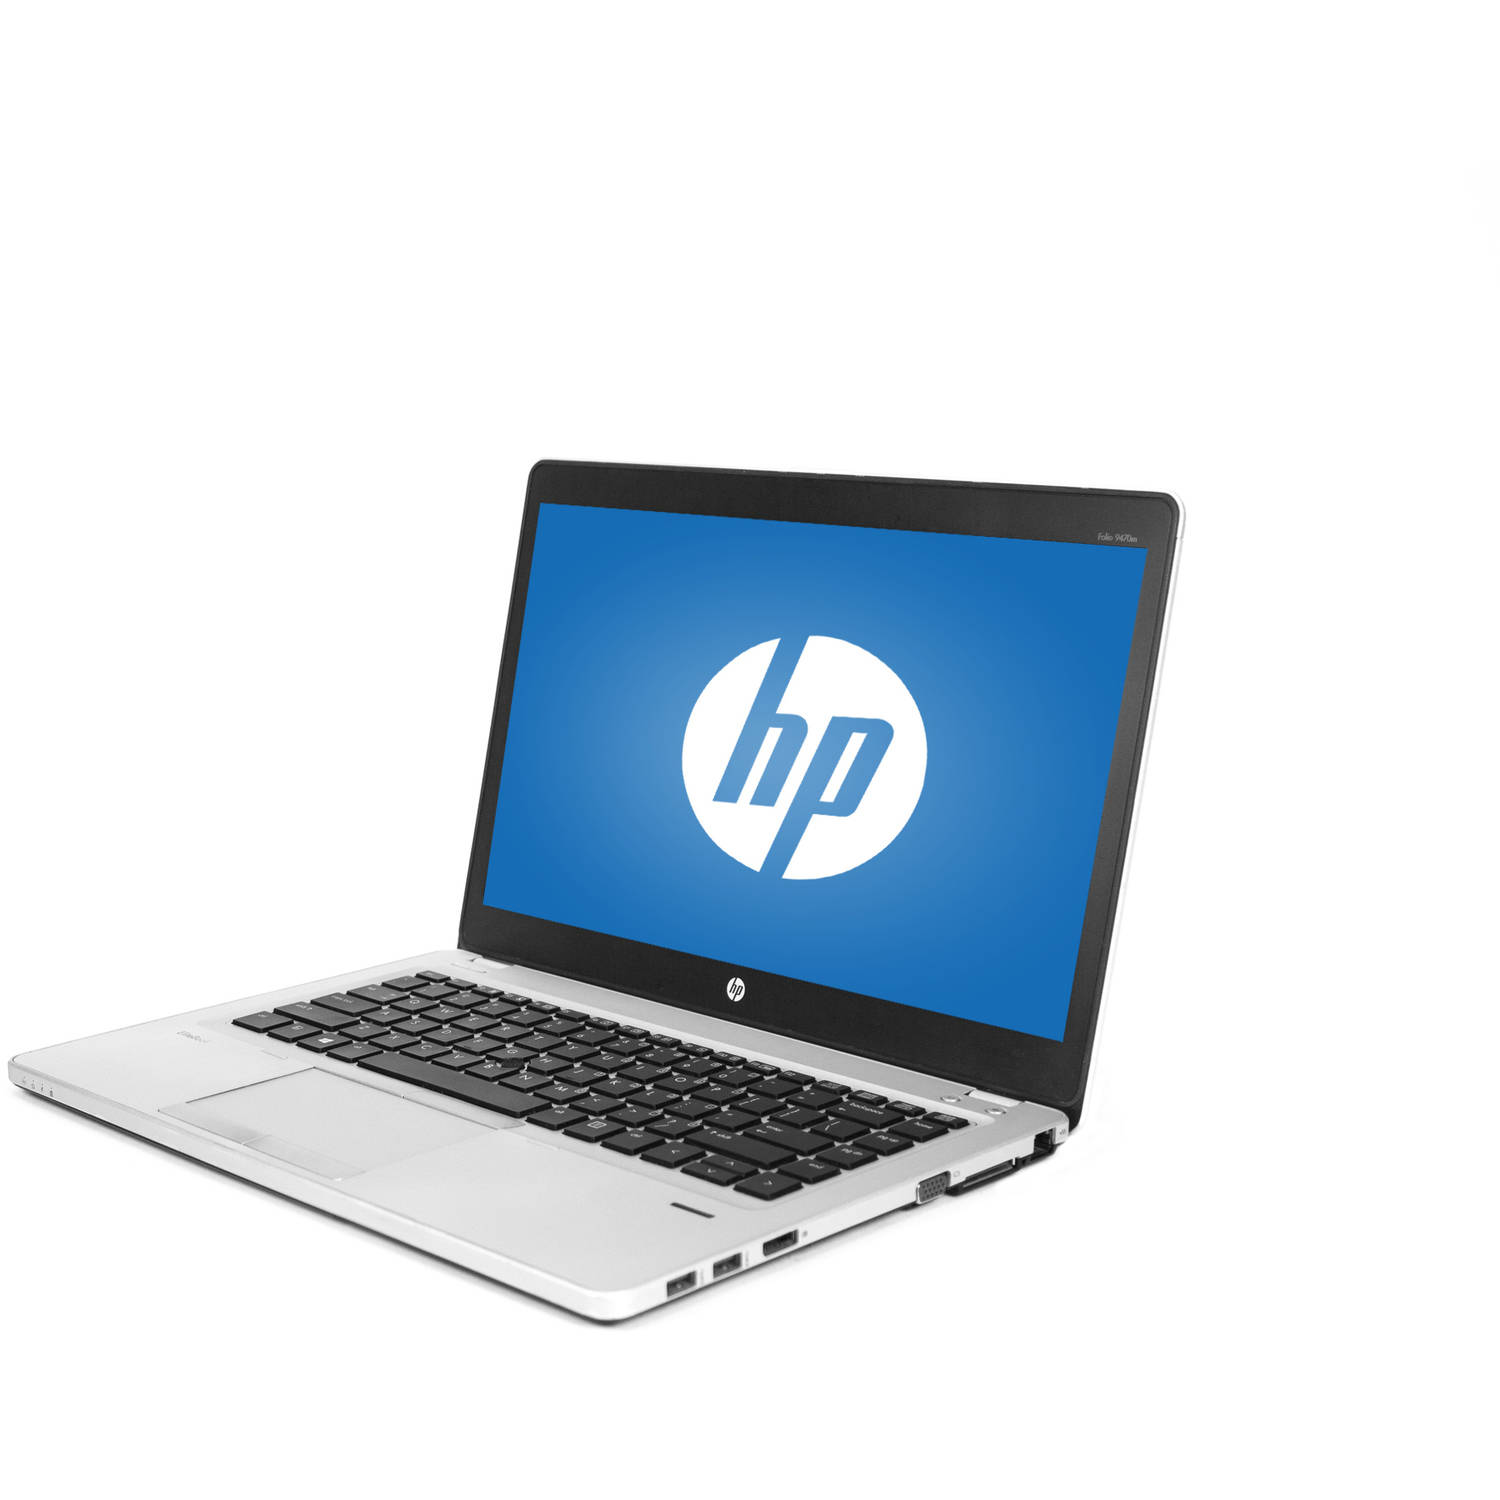 "Refurbished HP Ultrabook Silver 14"" EliteBook Folio 9470M WA5-1158 Laptop PC with Intel Core i5-1.8GHz 3427U, 16GB Memory, 750GB Hard Drive and Windows 10 Pro"